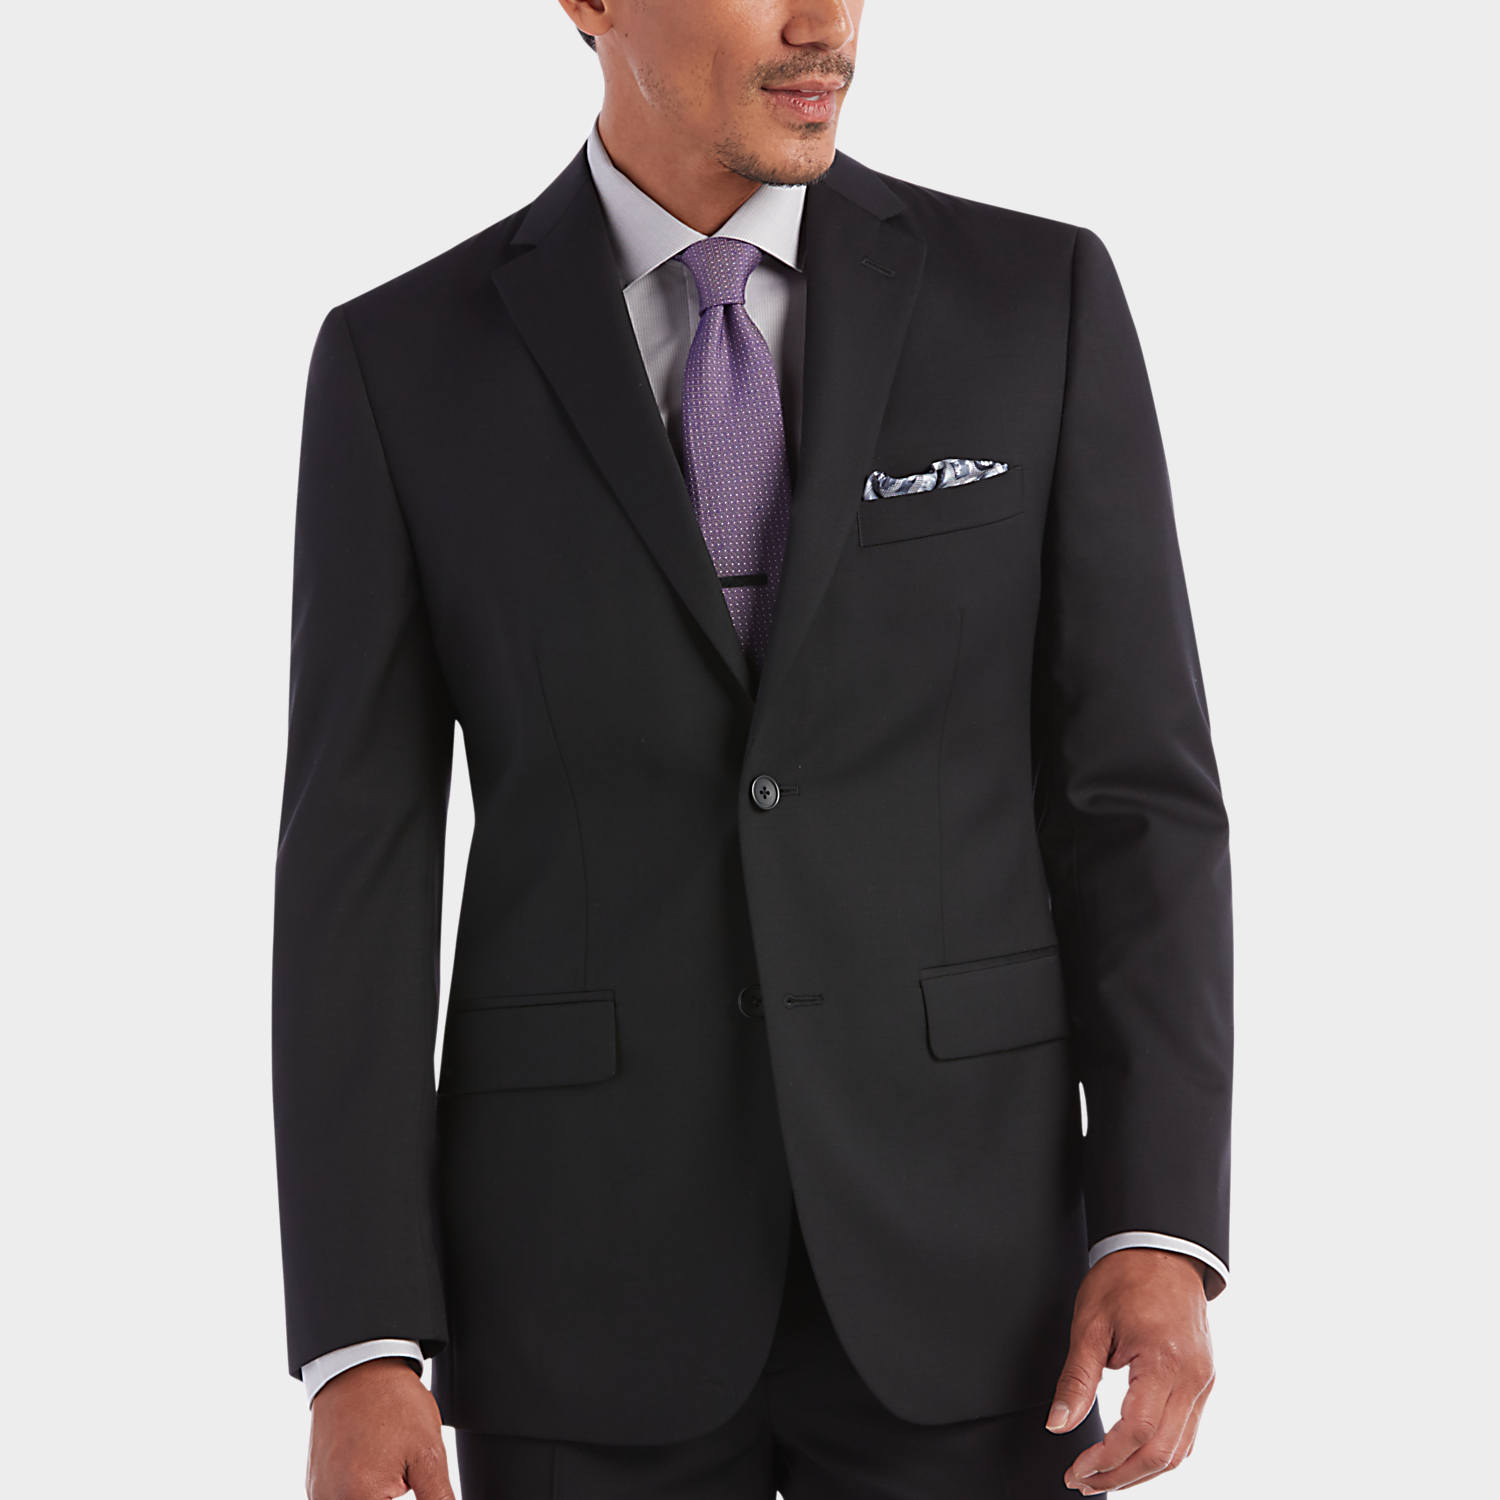 black suits 100% wool black slim fit suit - menu0027s suits - awearness kenneth cole | FYNIETF